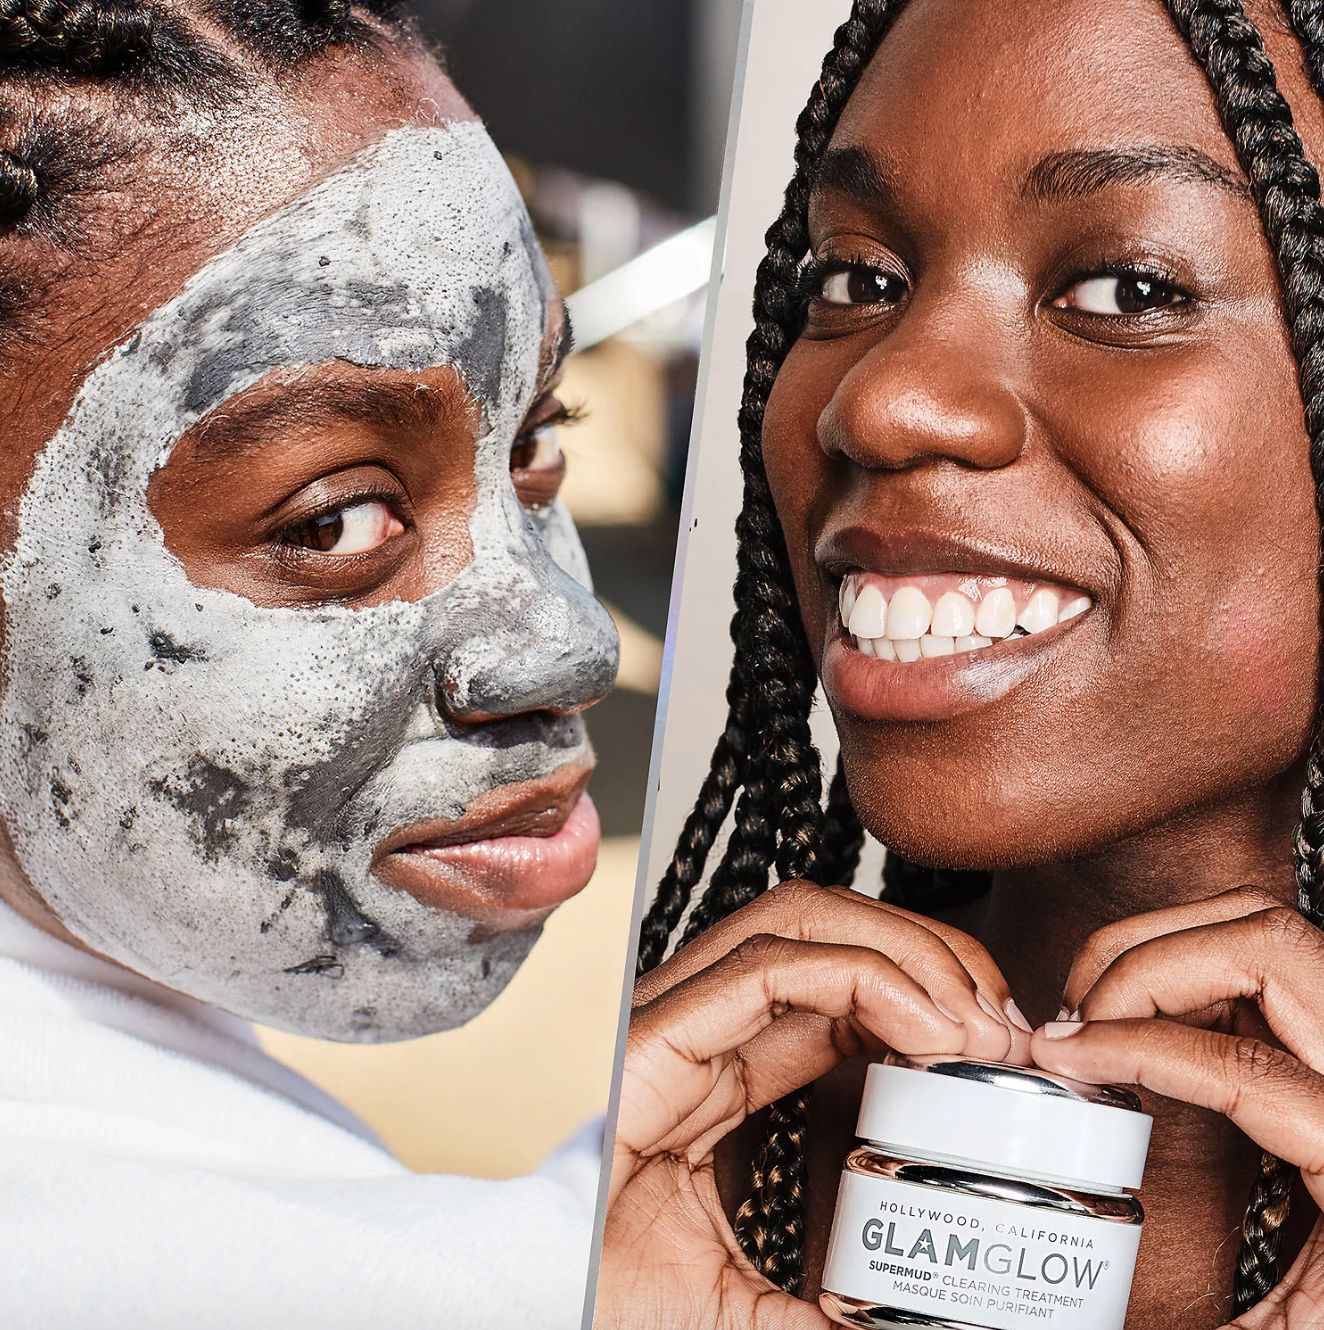 on left, model wearing the mask; on right, model holding up white jar of product